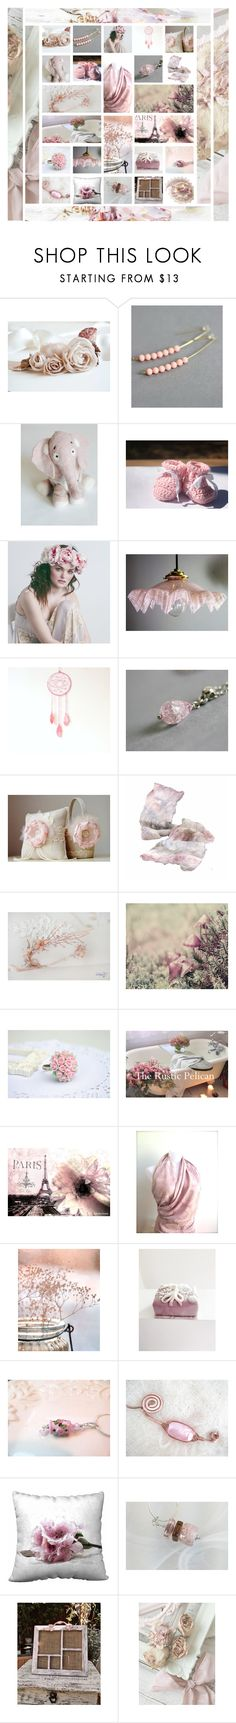 Untitled #496 by andreadawn1 on Polyvore featuring WALL